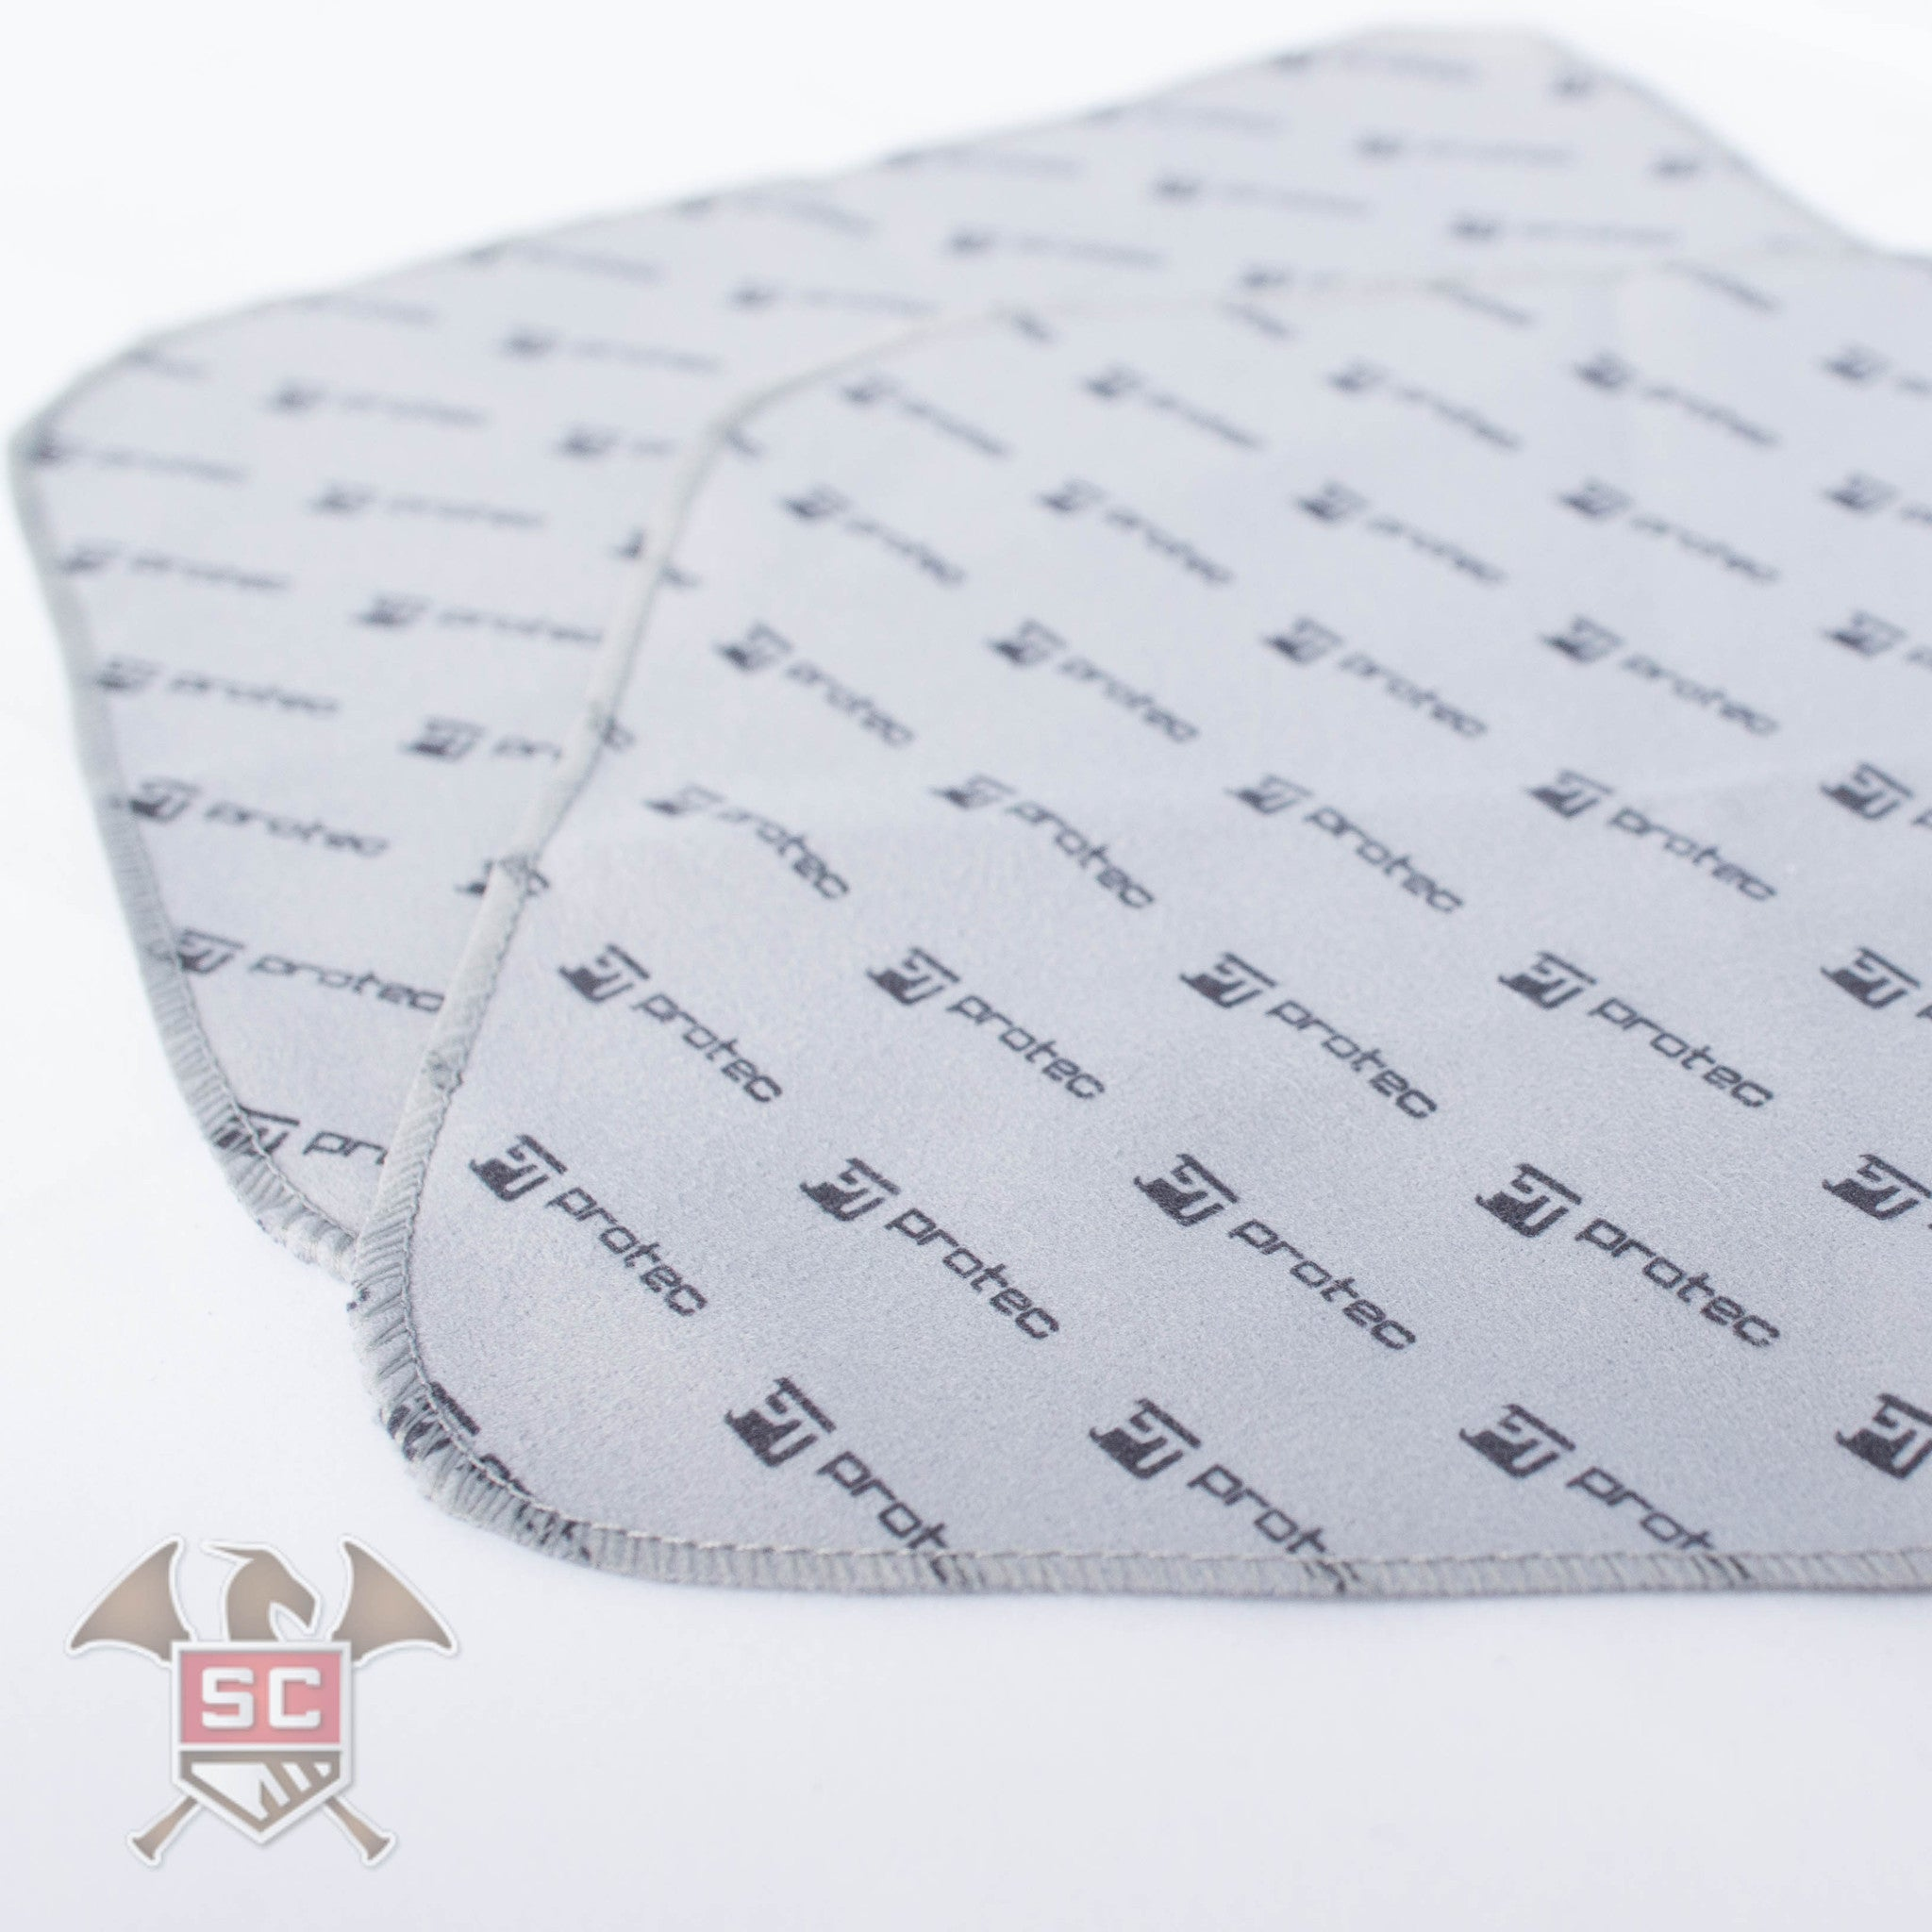 Protec Microfiber polishing cloth